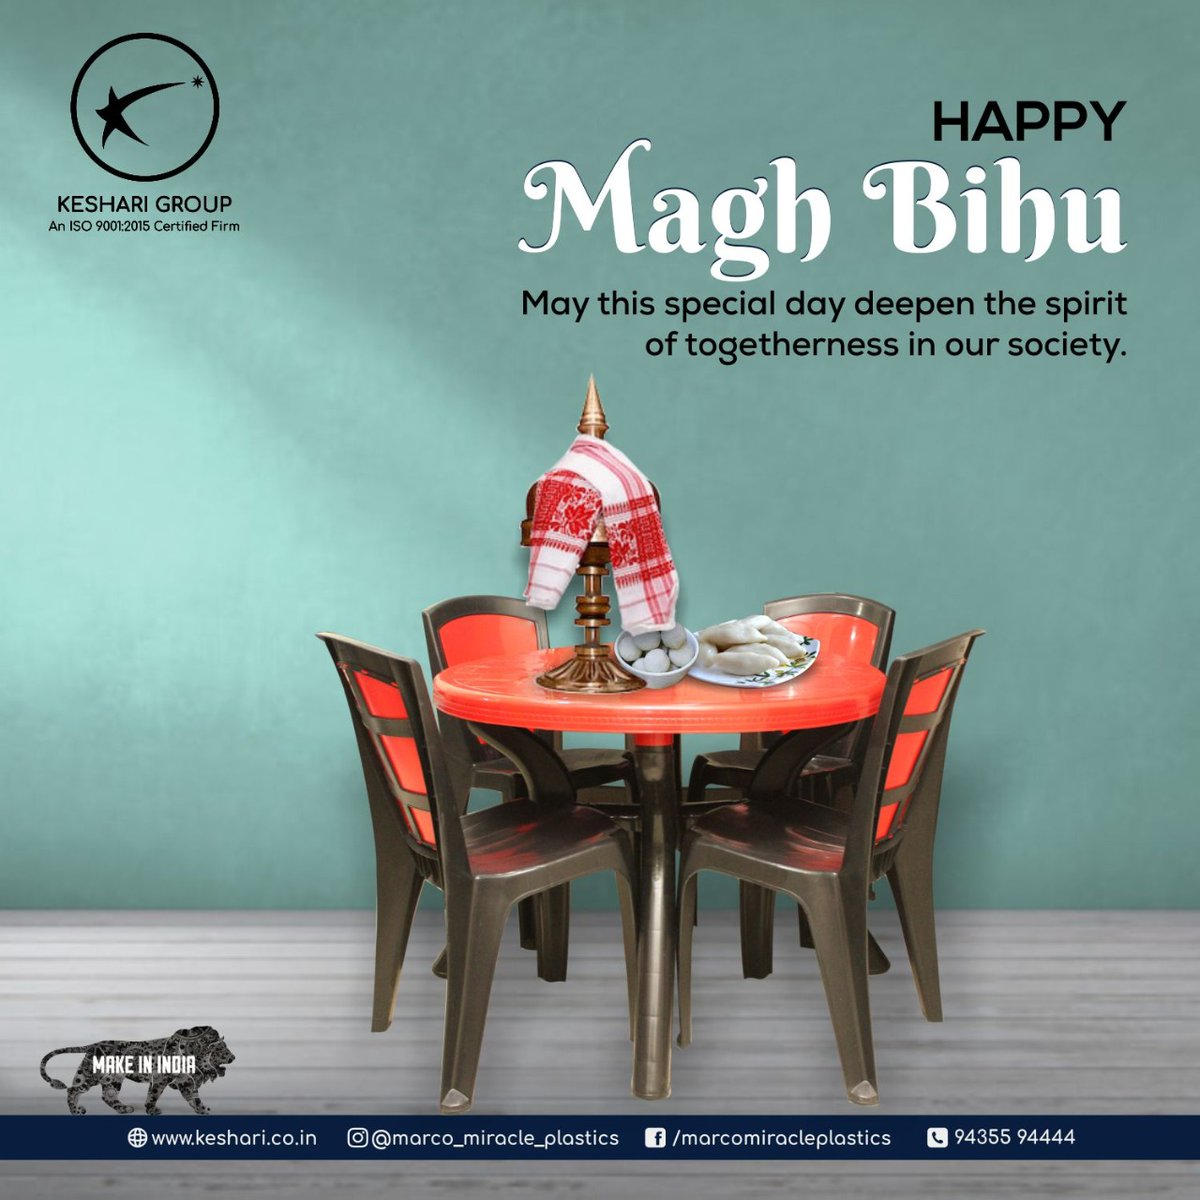 May this Bhogali Bihu be a harbinger of happiness in your life! Happy Bihu. . . . #Bihu #HappyMaghBihu #Chair #Table #DinningTable #Bucket #Dustbin #Stool #HouselholdItems #HouselholdEssentials #MarcoMiracle #Miracle #Marco #MiracleChairs #KeshariIndustries #Guwahati #Assam